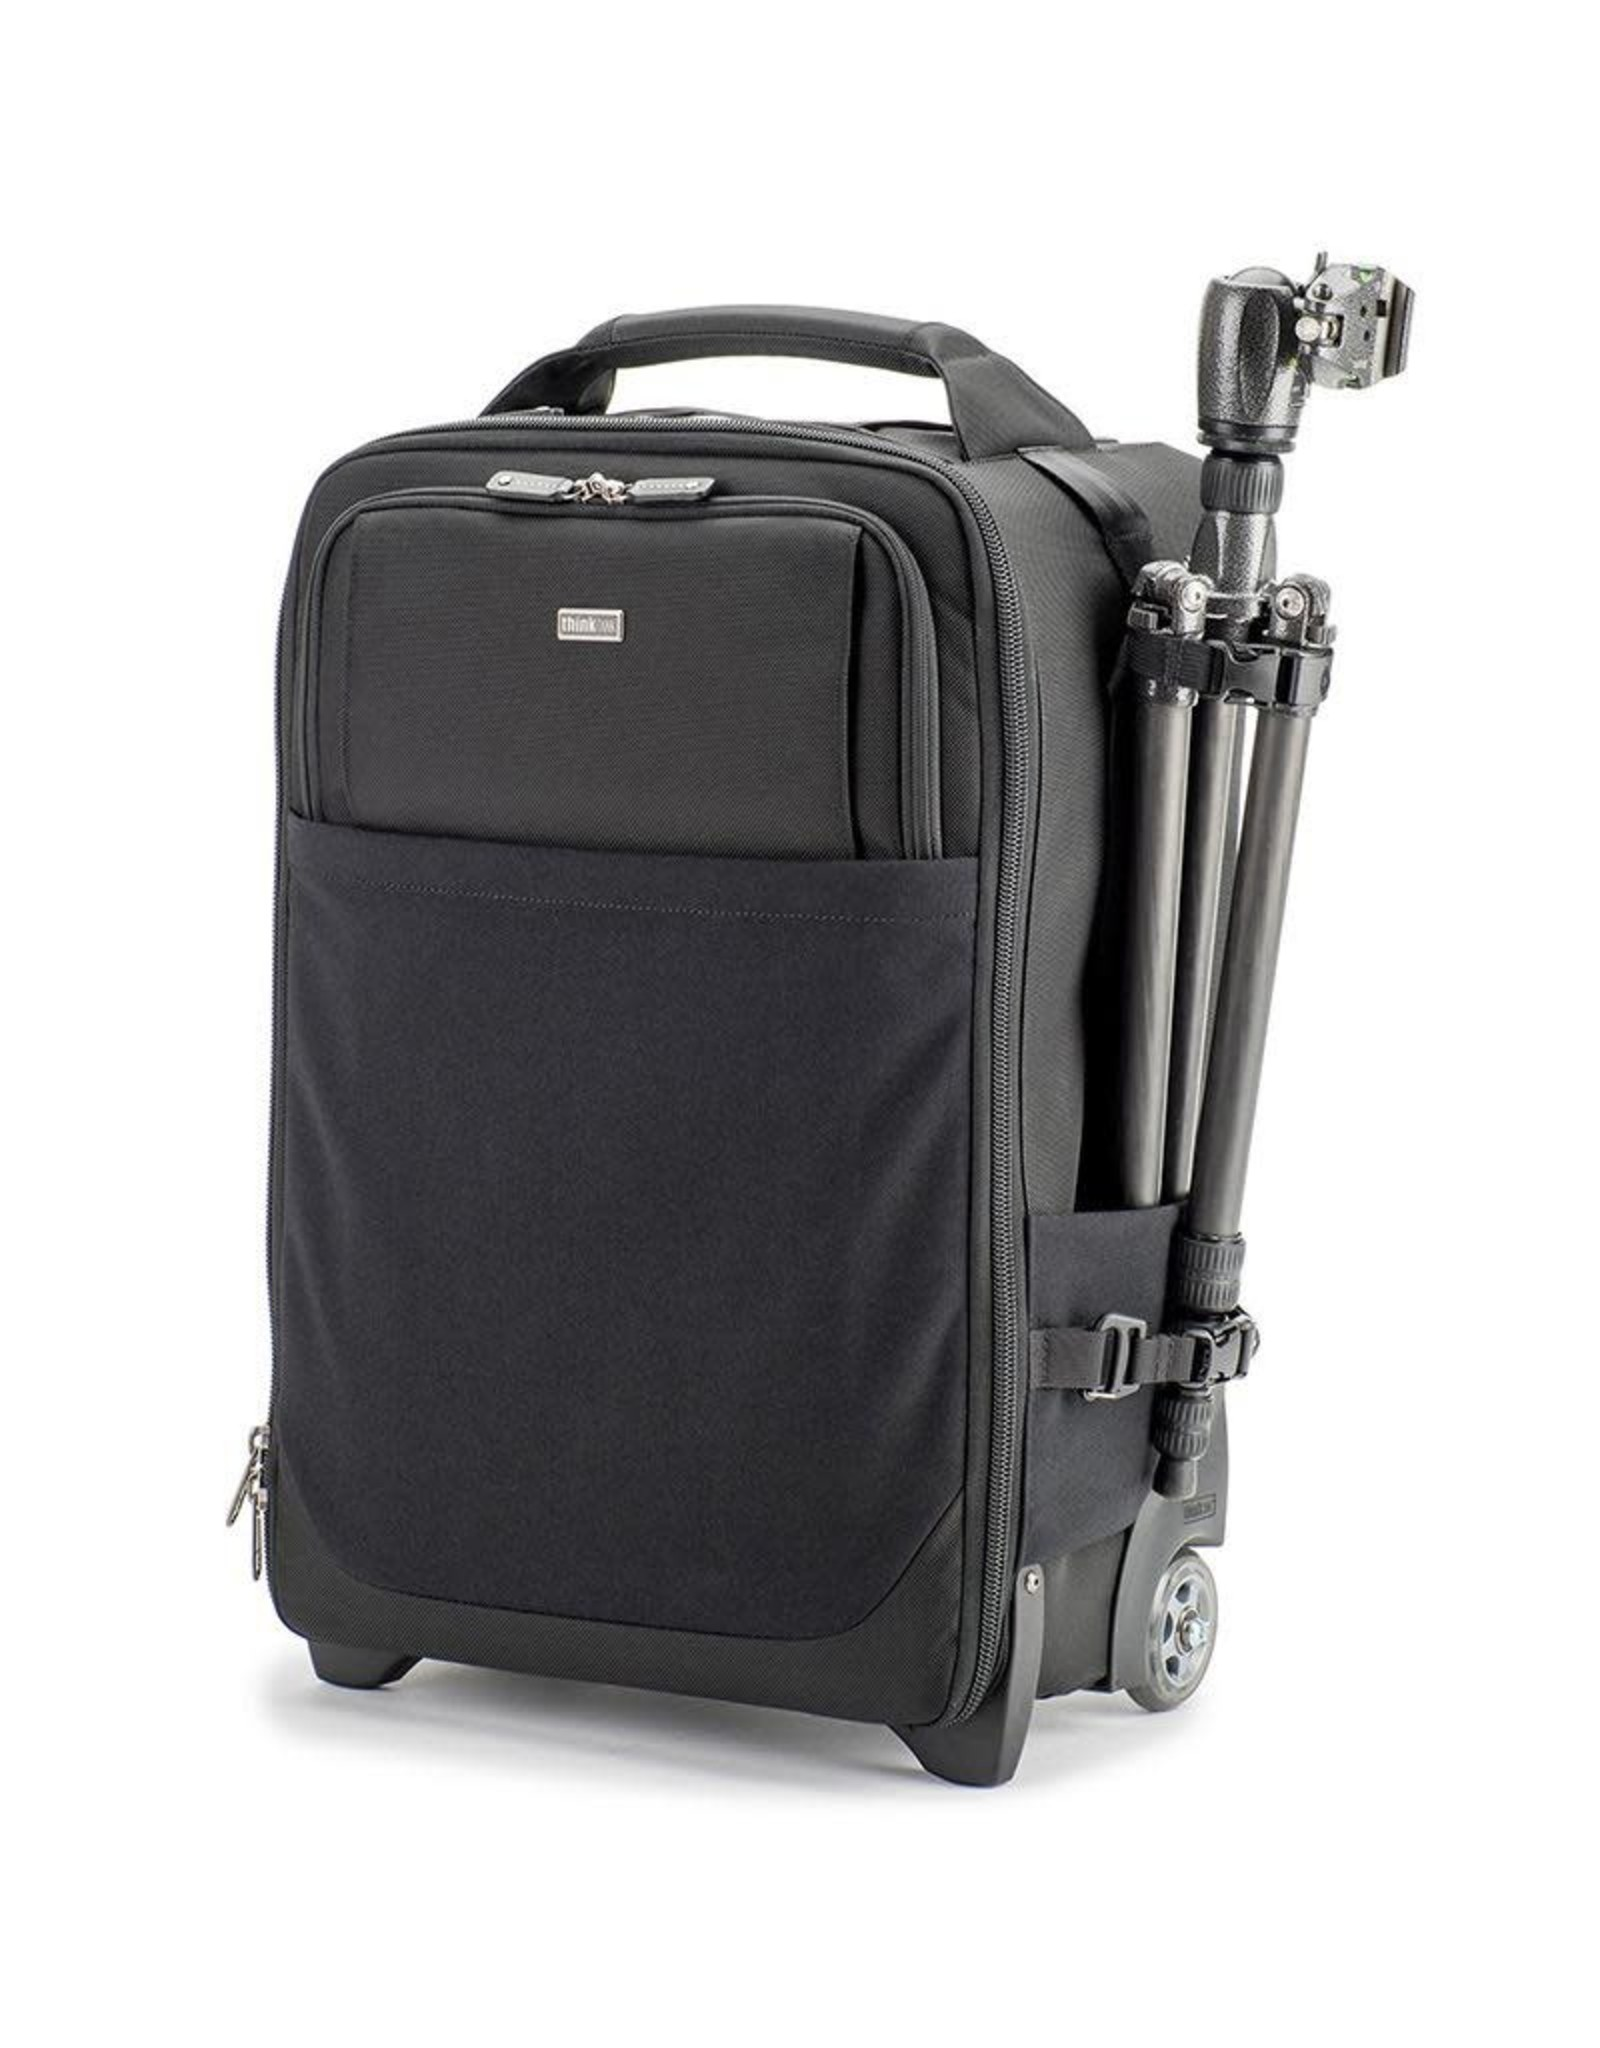 Think Tank Think Tank  Airport Security™ V3.0 Rolling luggage - meets USA domestic and most international carry on requirements